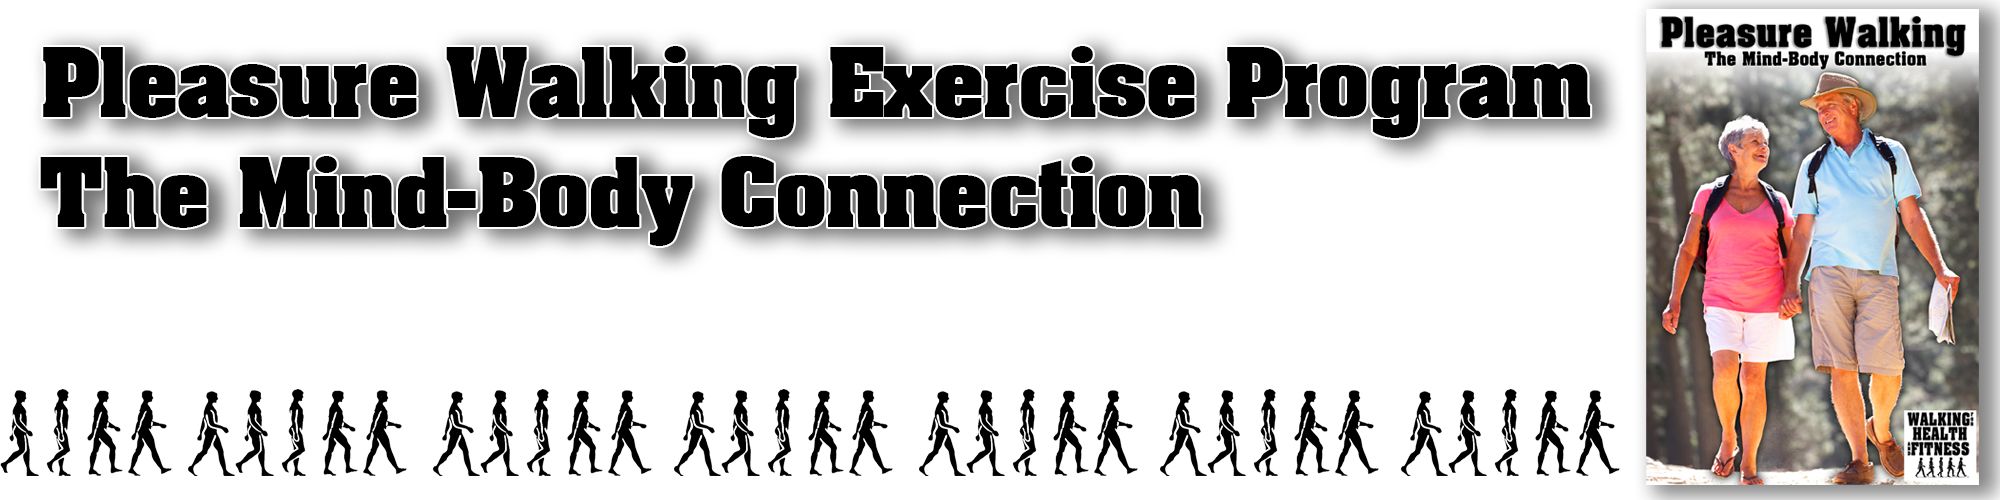 banner-audiobook-walking-health-fitness-pleasure-walking-exercise-program-walking-men.jpg